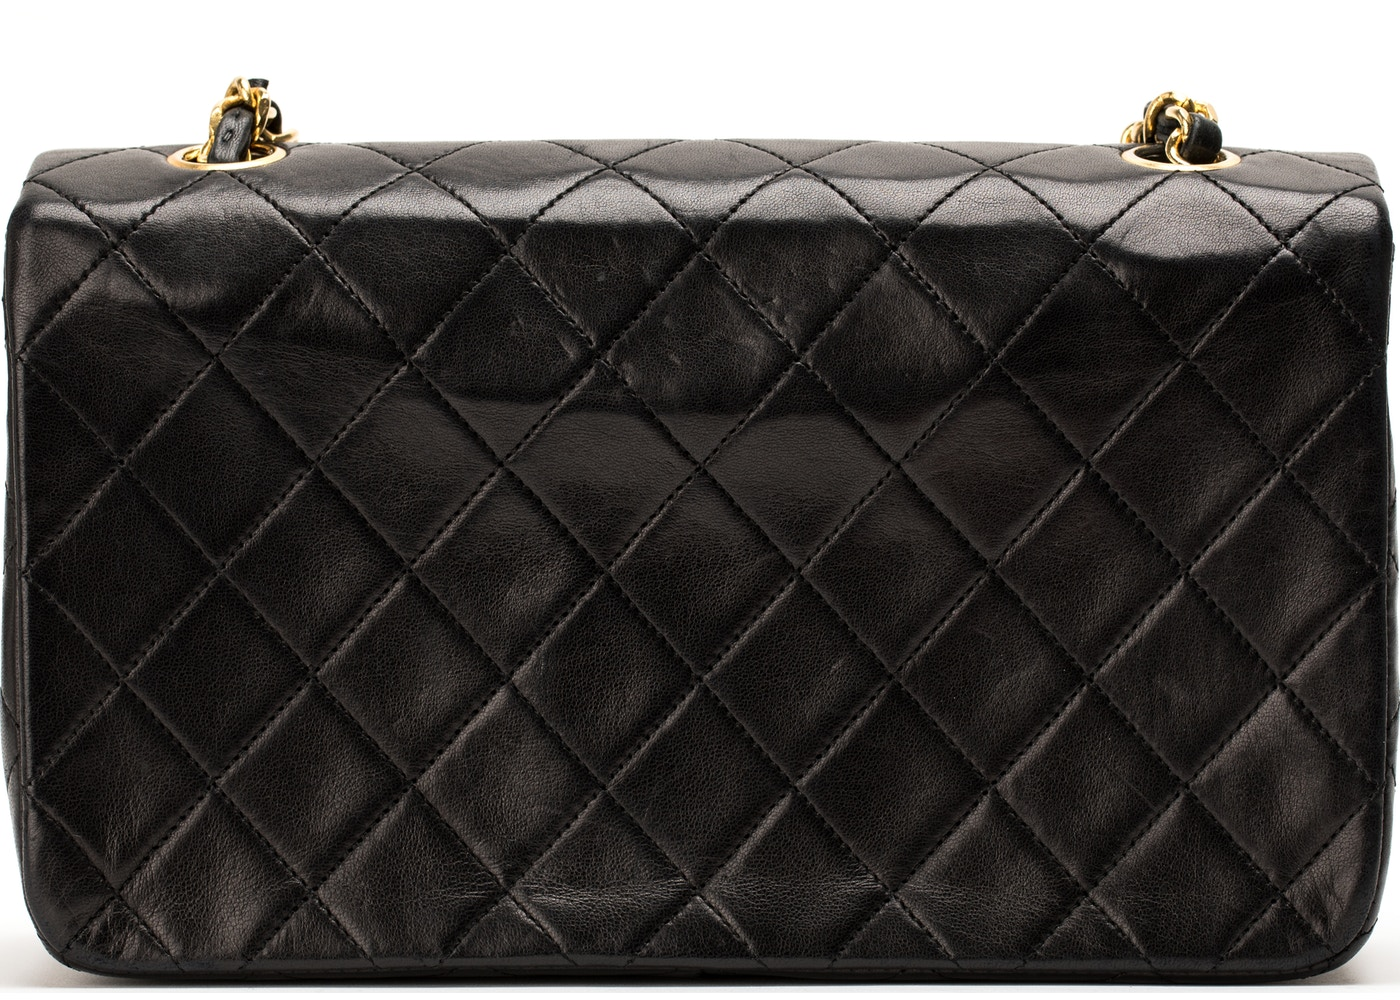 d854bf586ae1 Chanel Vintage Full Flap Stitched Small Black